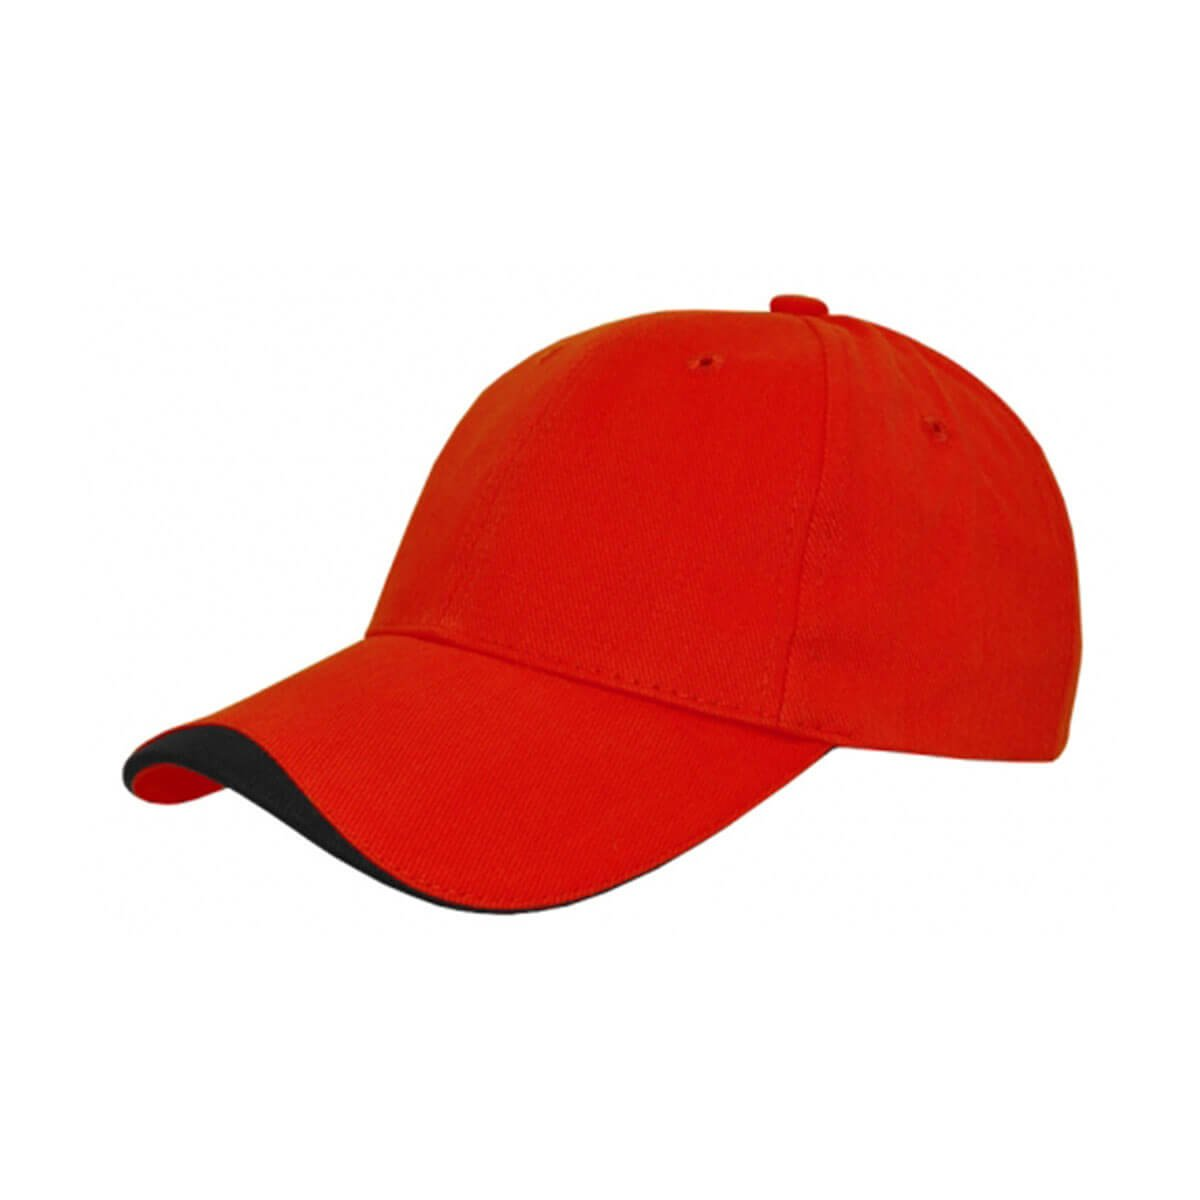 Kids Cap-Red / Black